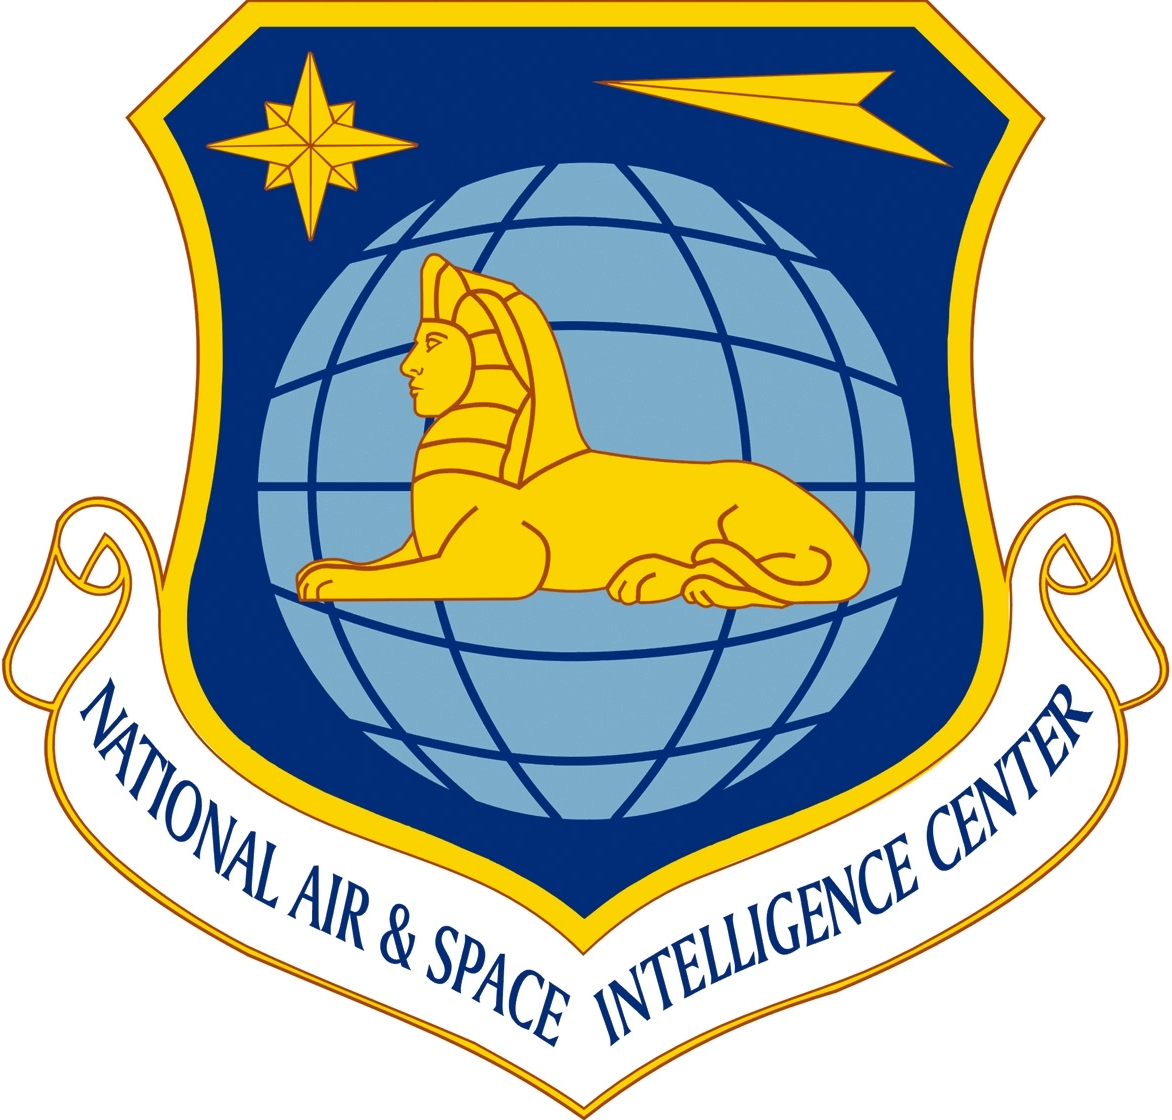 National Air and Space Intelligence Center - Wikipedia